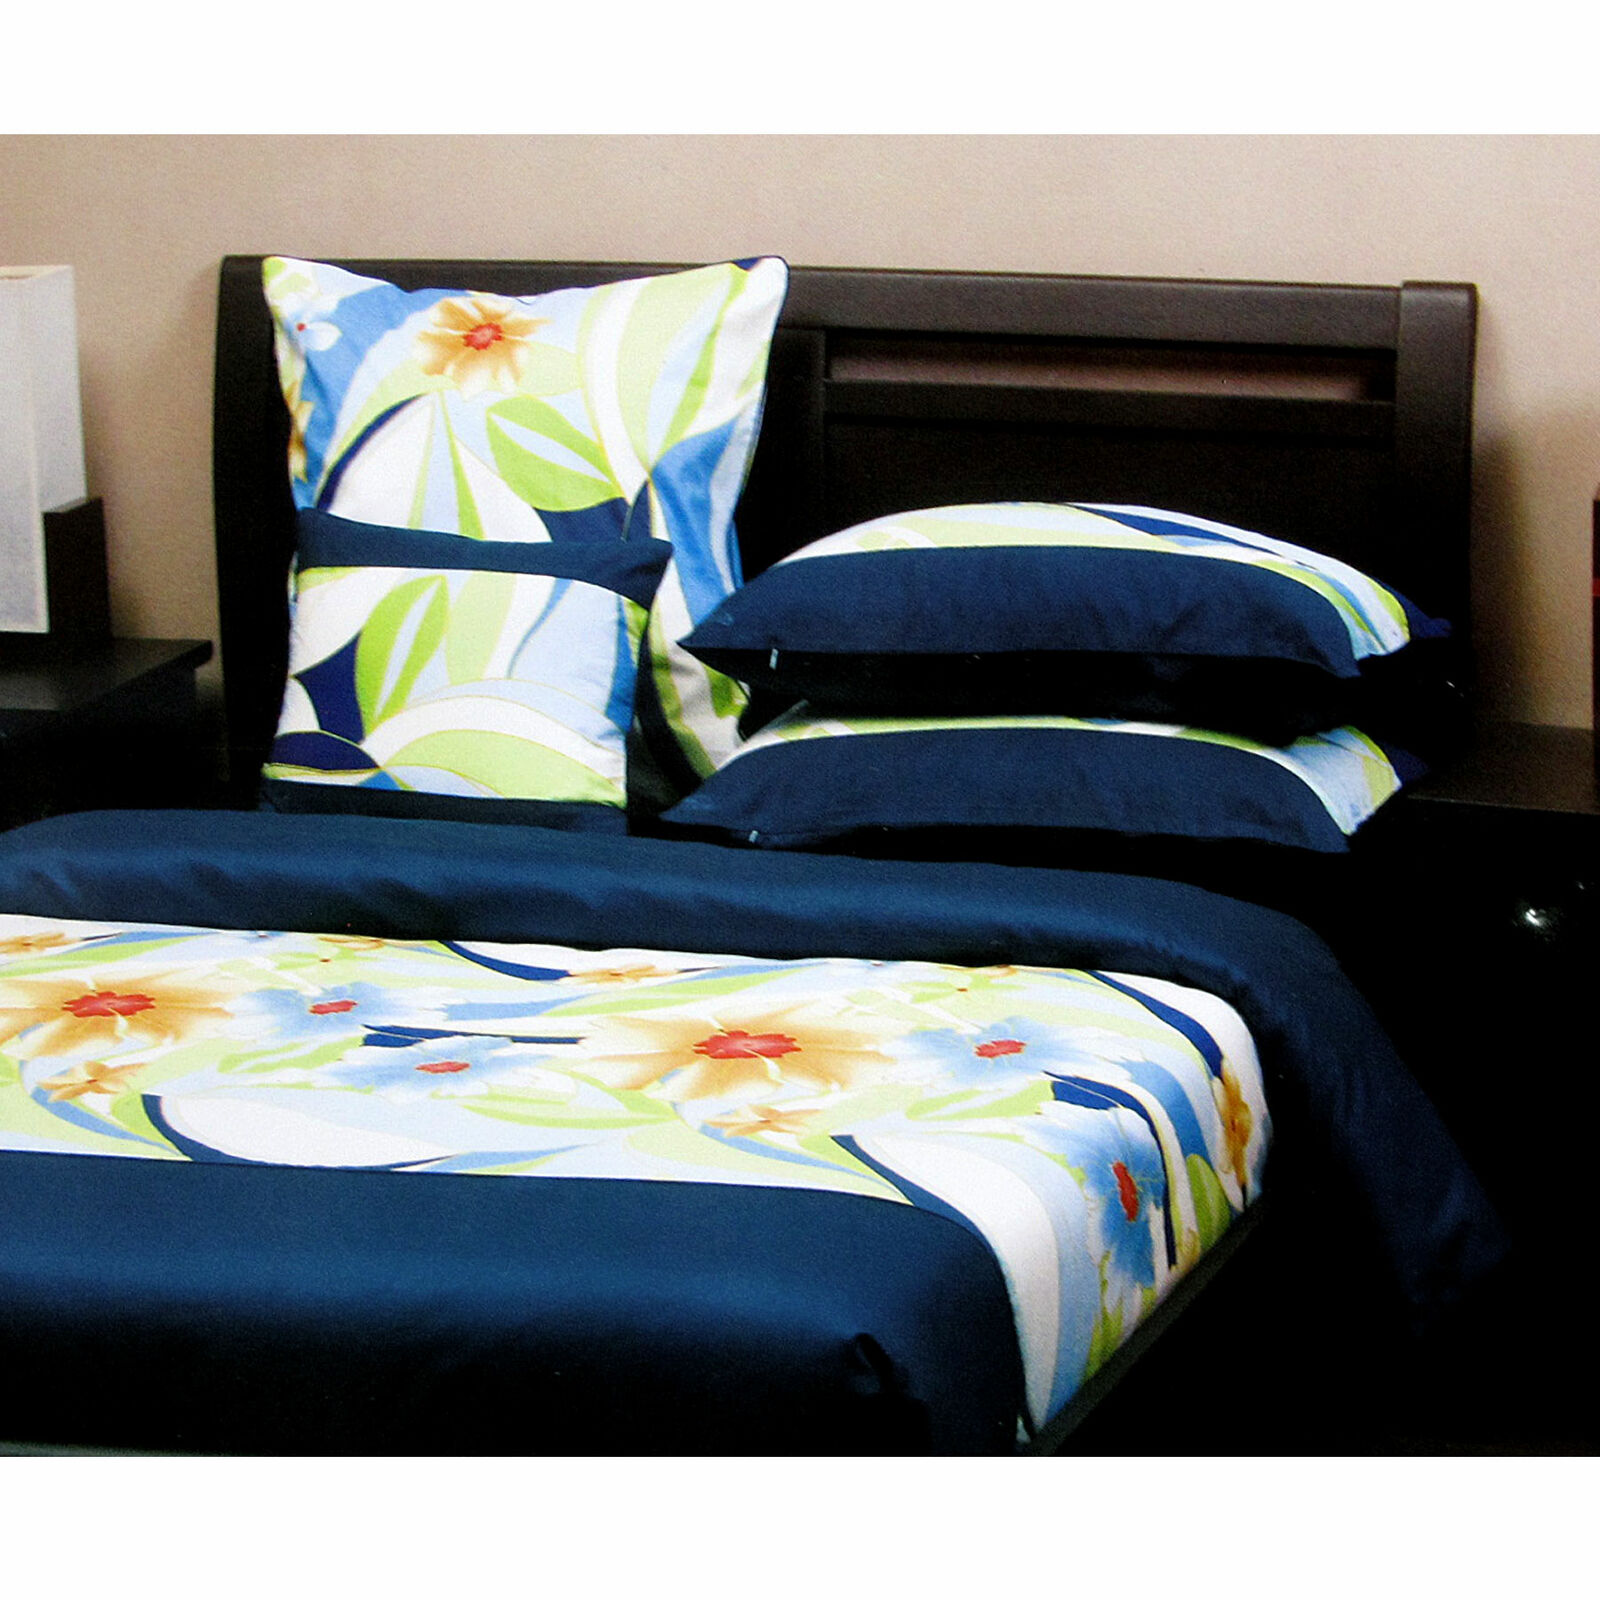 300TC Pure Cotton Iluka Quilt Startseite Set by Chameleon OR Accessories